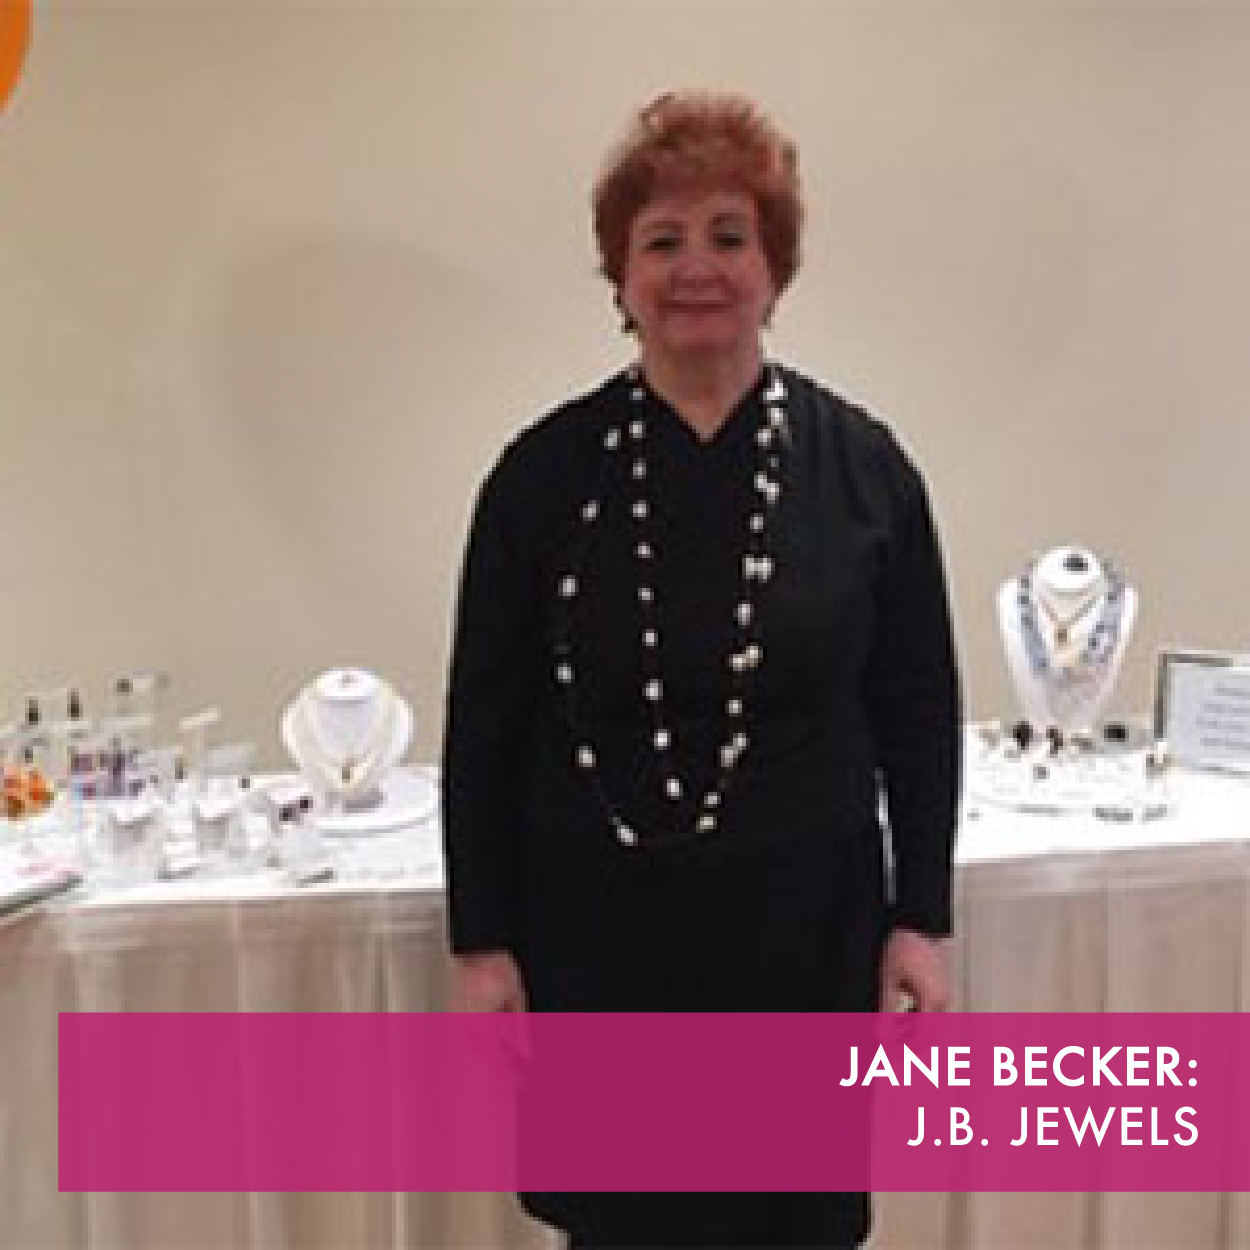 J.B. Jewels offers clients a unique service allowing them to redesign heirlooms and jewelry into pieces that fit their lifestyle and fashion sense.